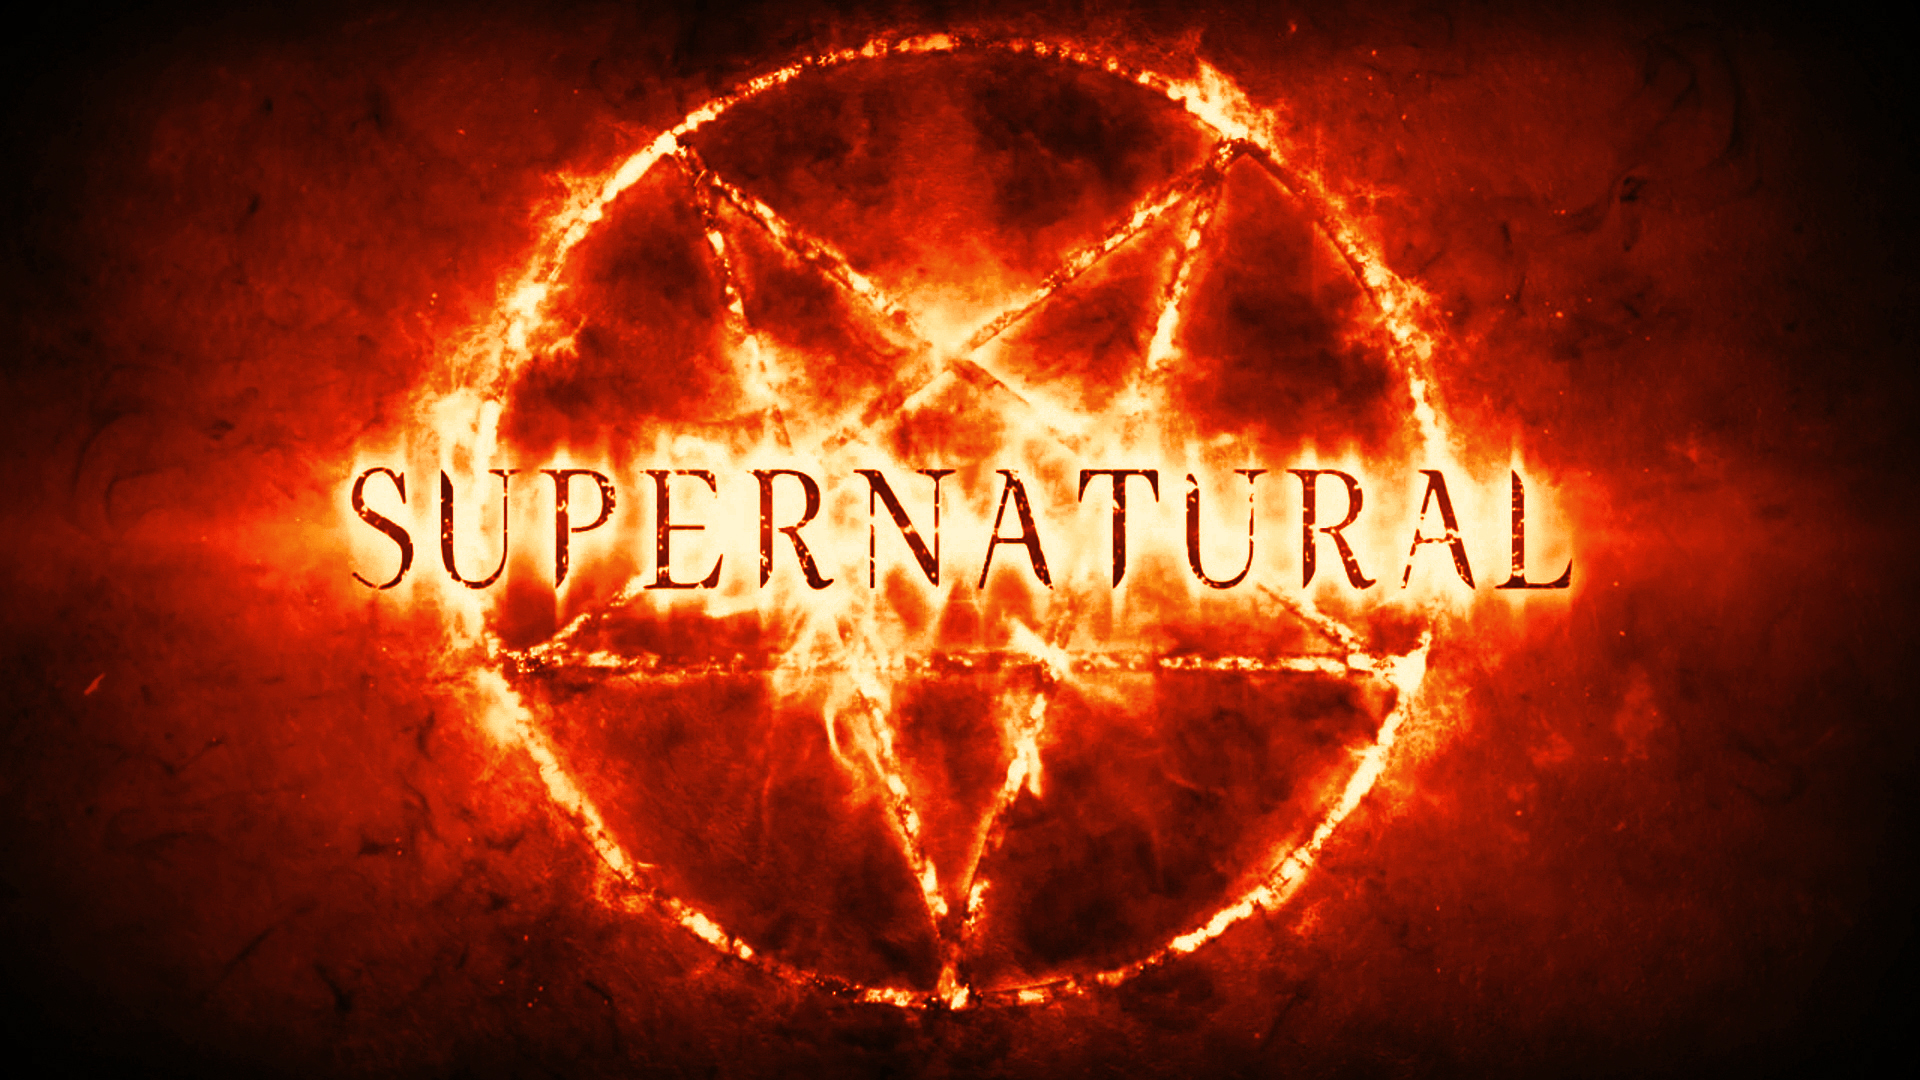 Supernatural Wallpaper for Desktop wallpaperwiki